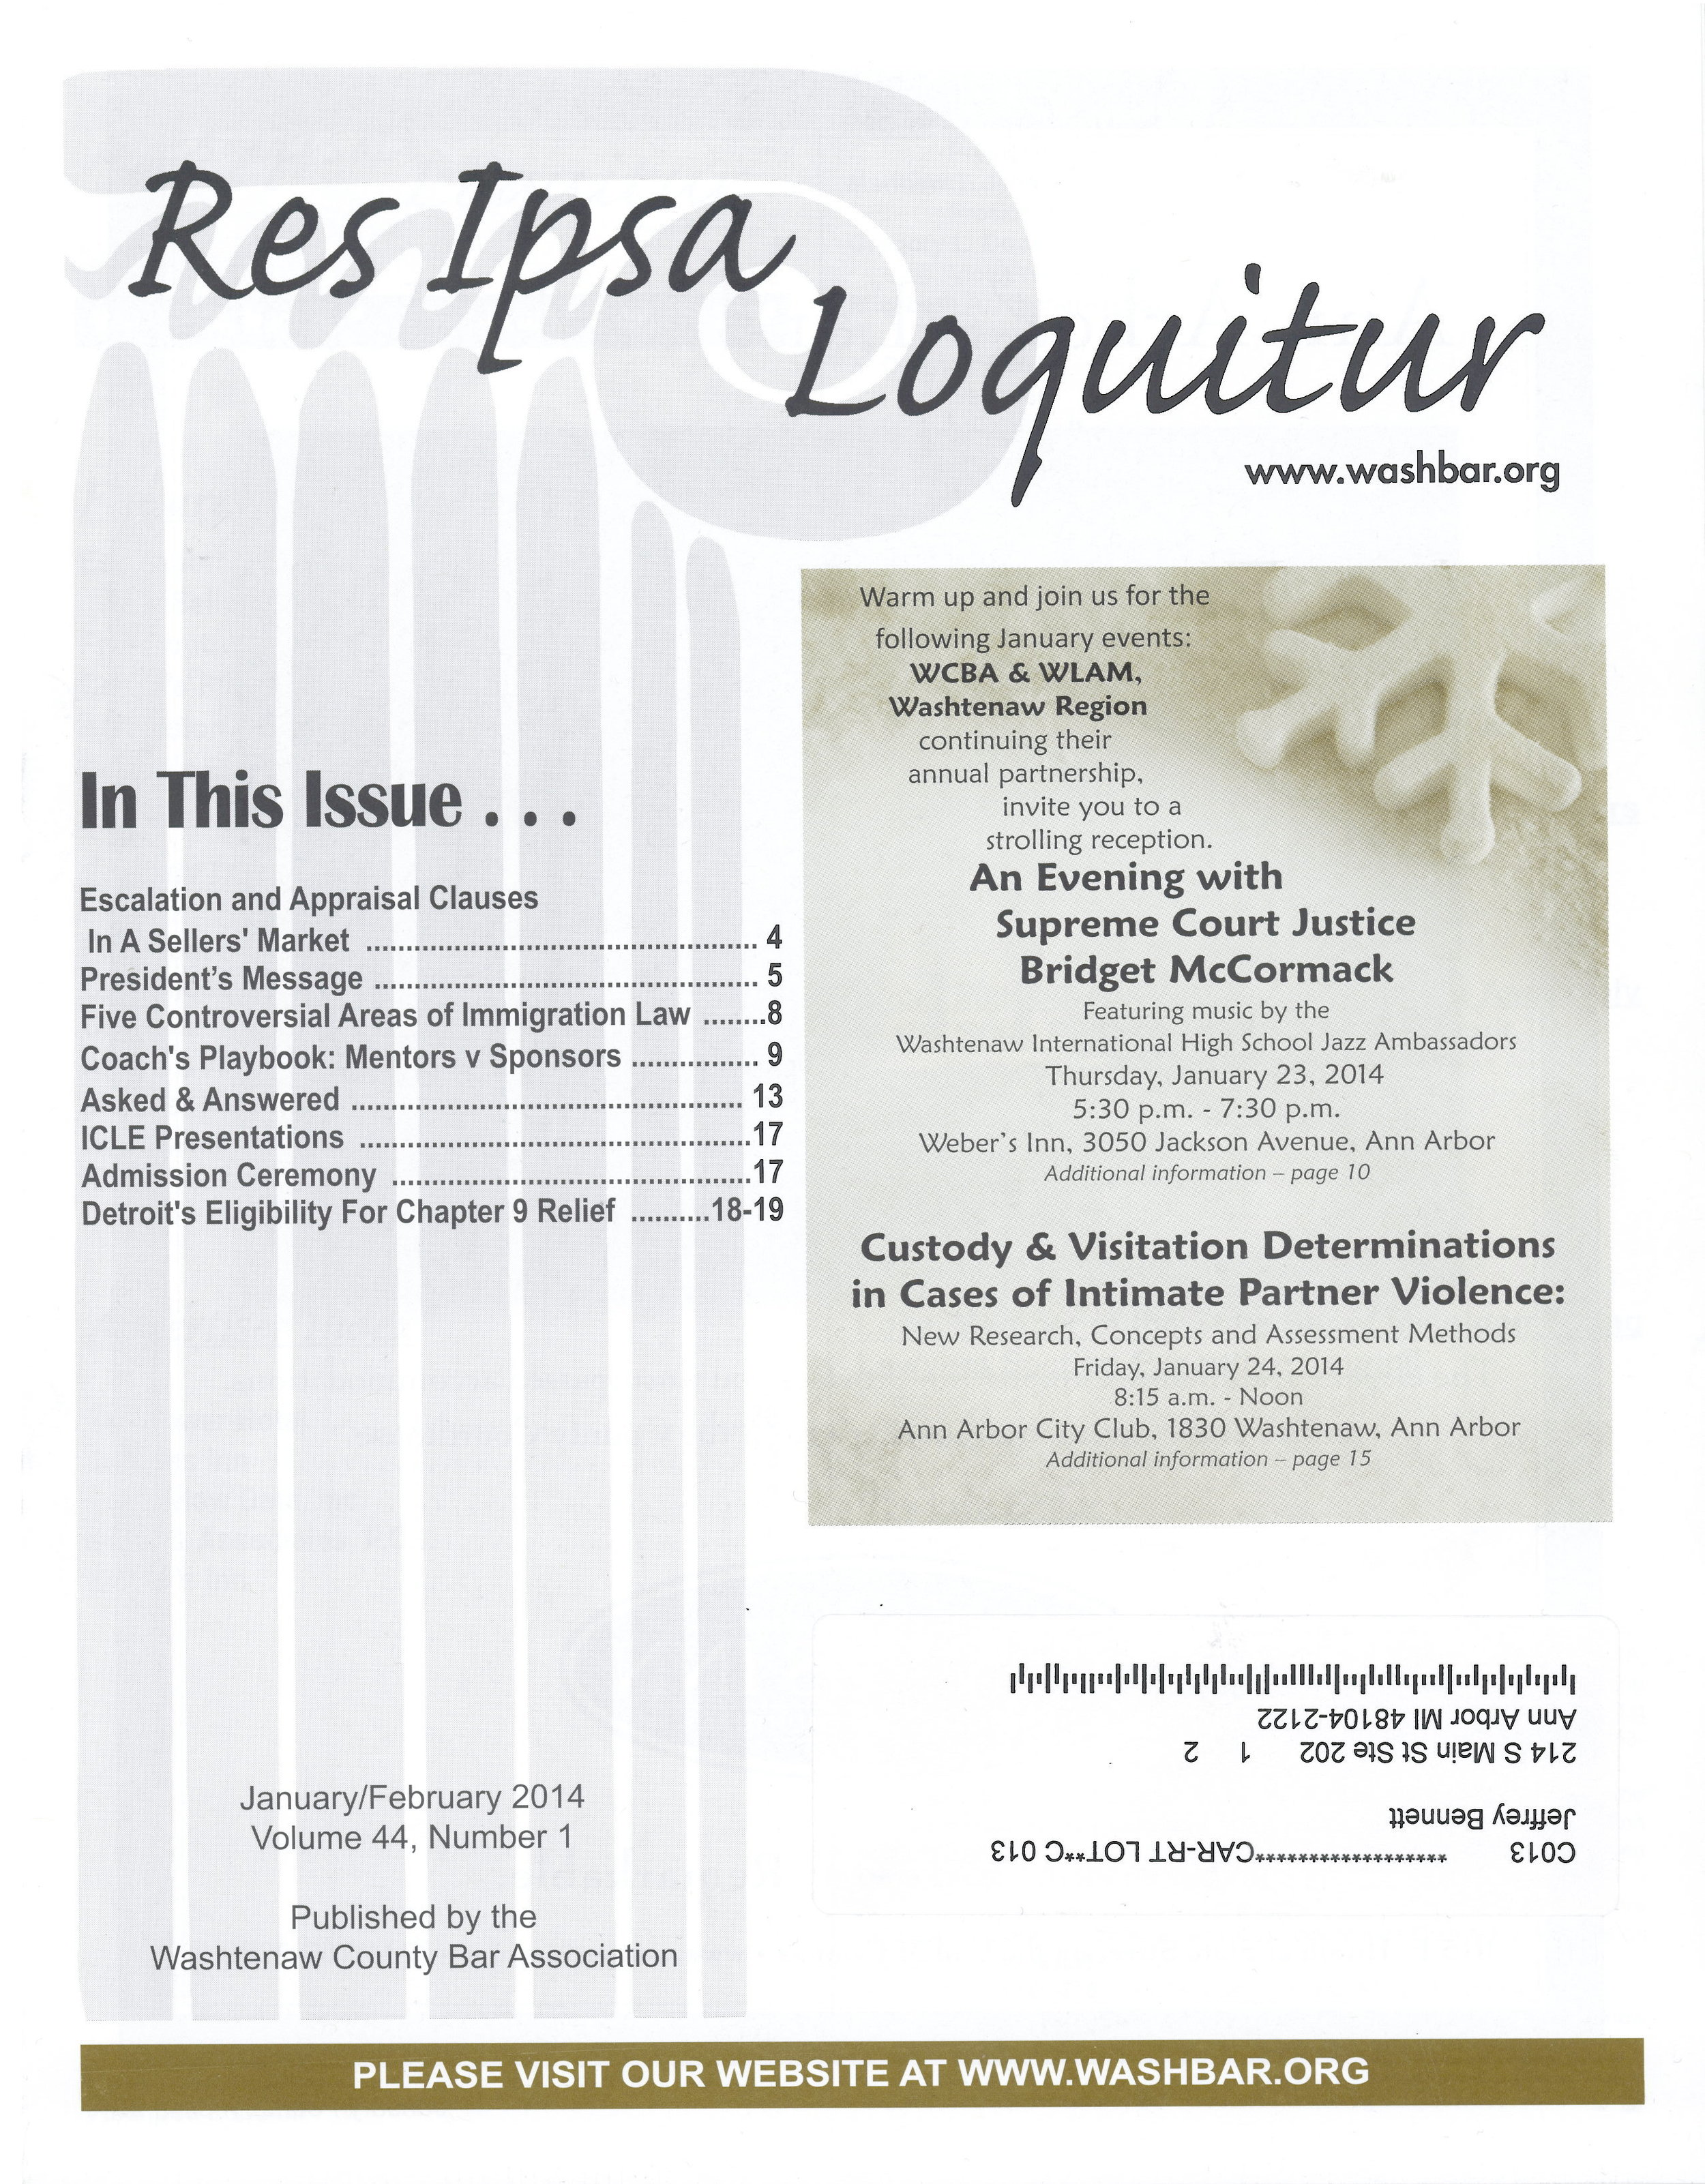 Article by Jeffrey Bennett discussing Detroit City's Bankruptcy Case that was featured in the Washtenaw County Bar Association Publication,  Res Ipsa Loquitur.